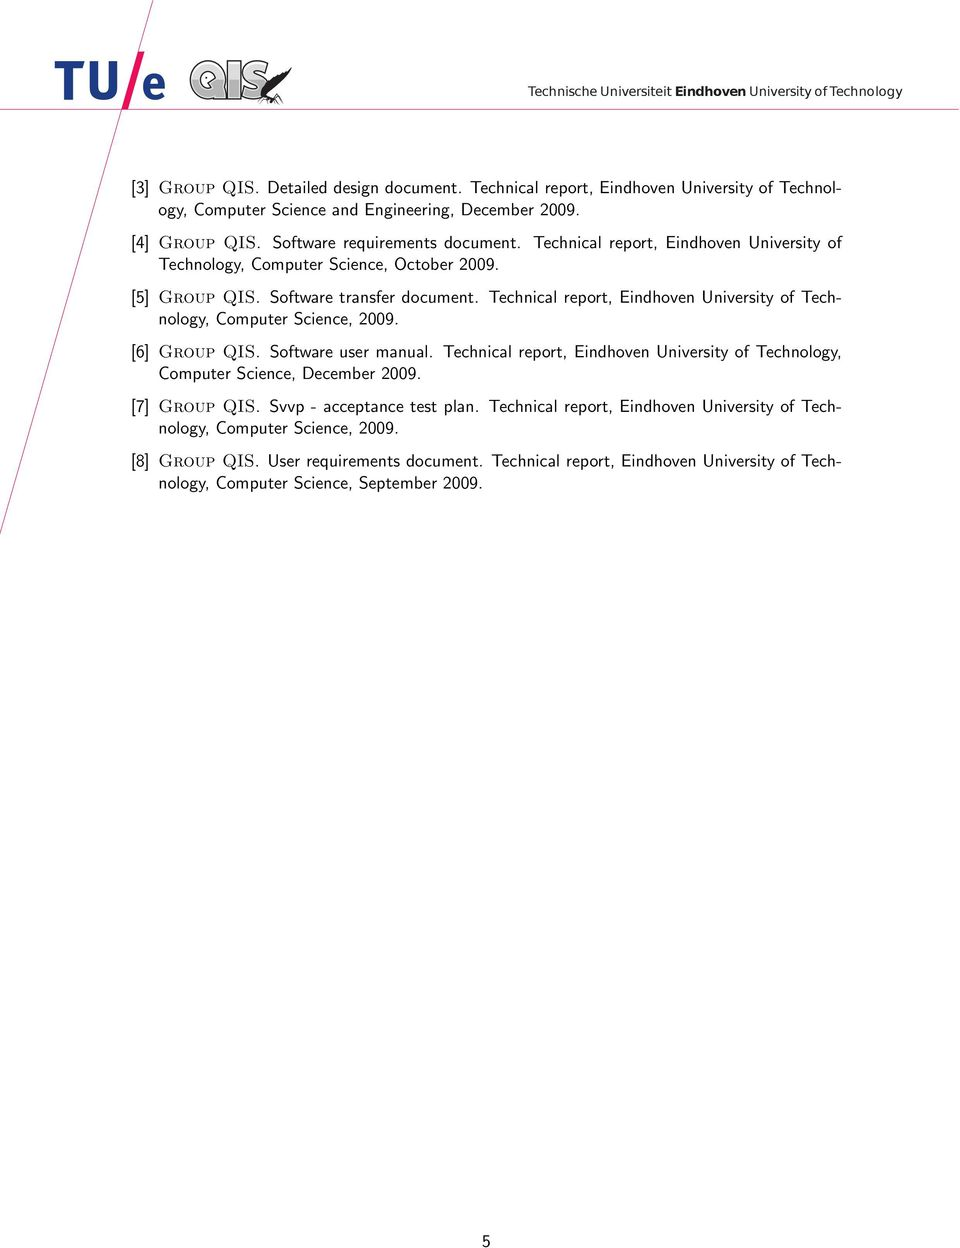 Technical report, Eindhoven University of Technology, Computer Science, 2009. [6] Group QIS. Software user manual.